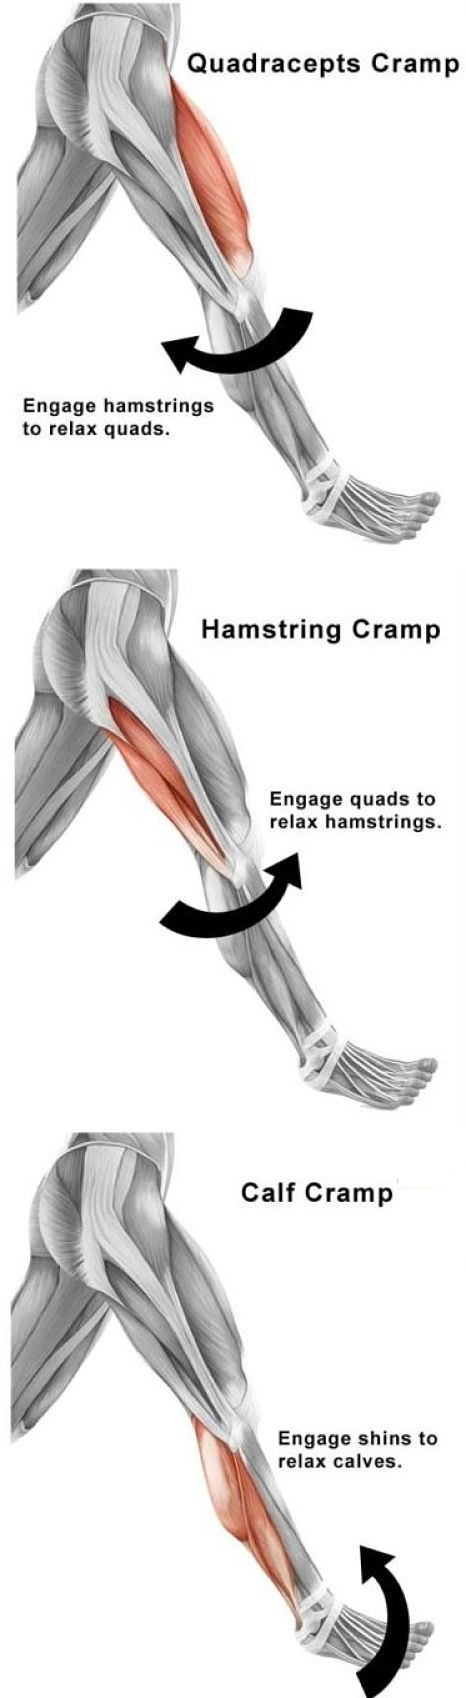 Types of leg cramps and which muscles are affected - see more details about the causes here